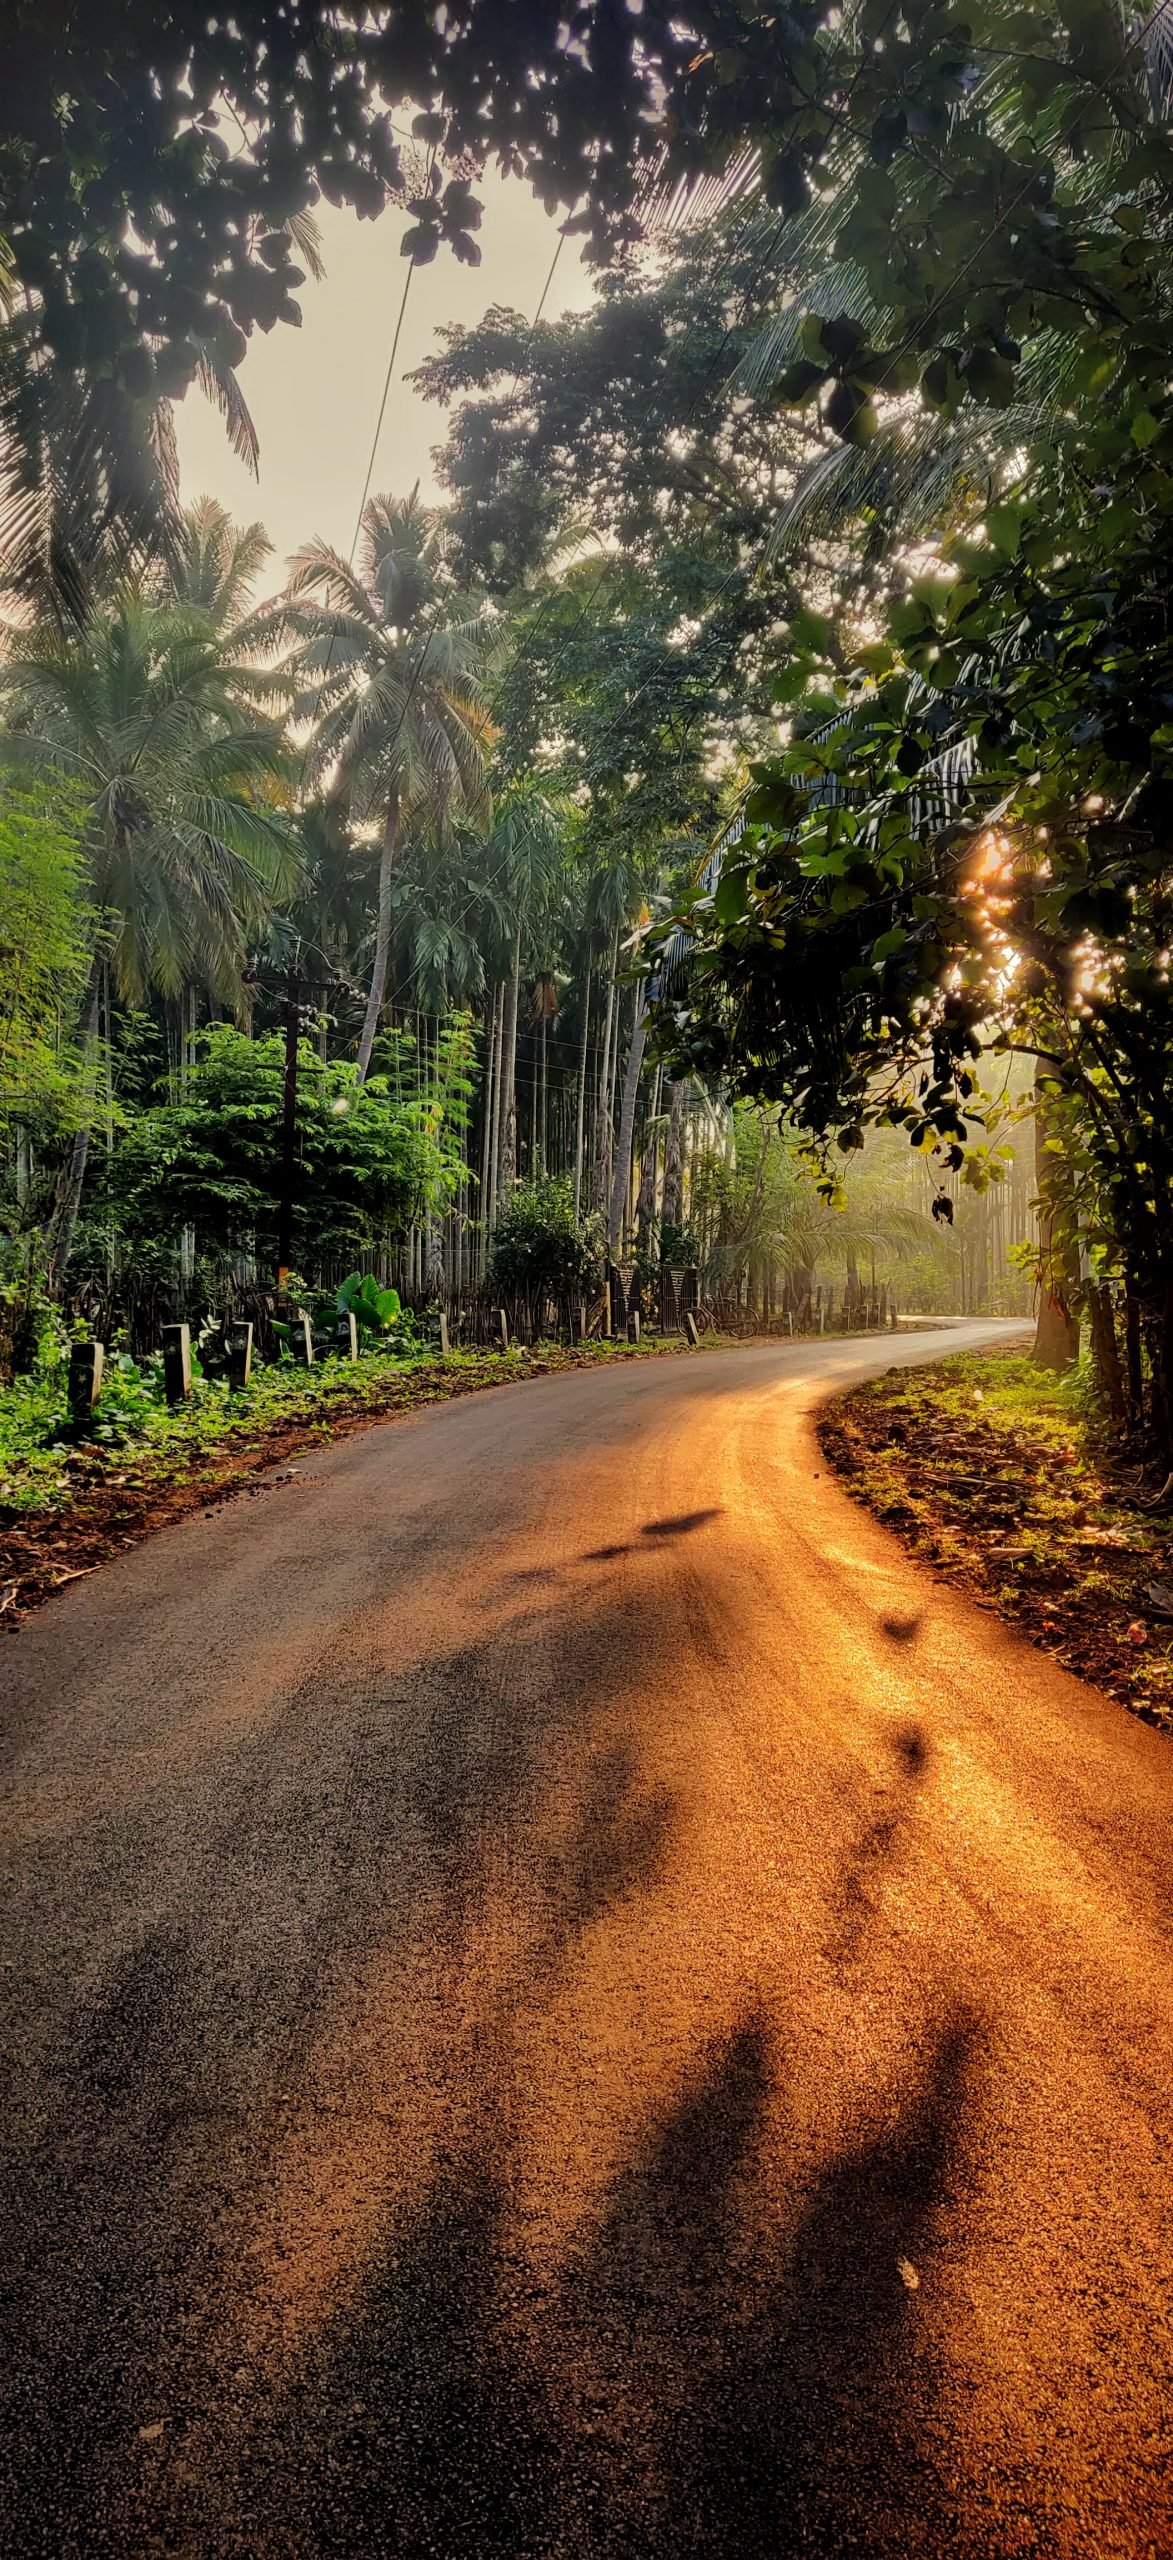 A road in forest